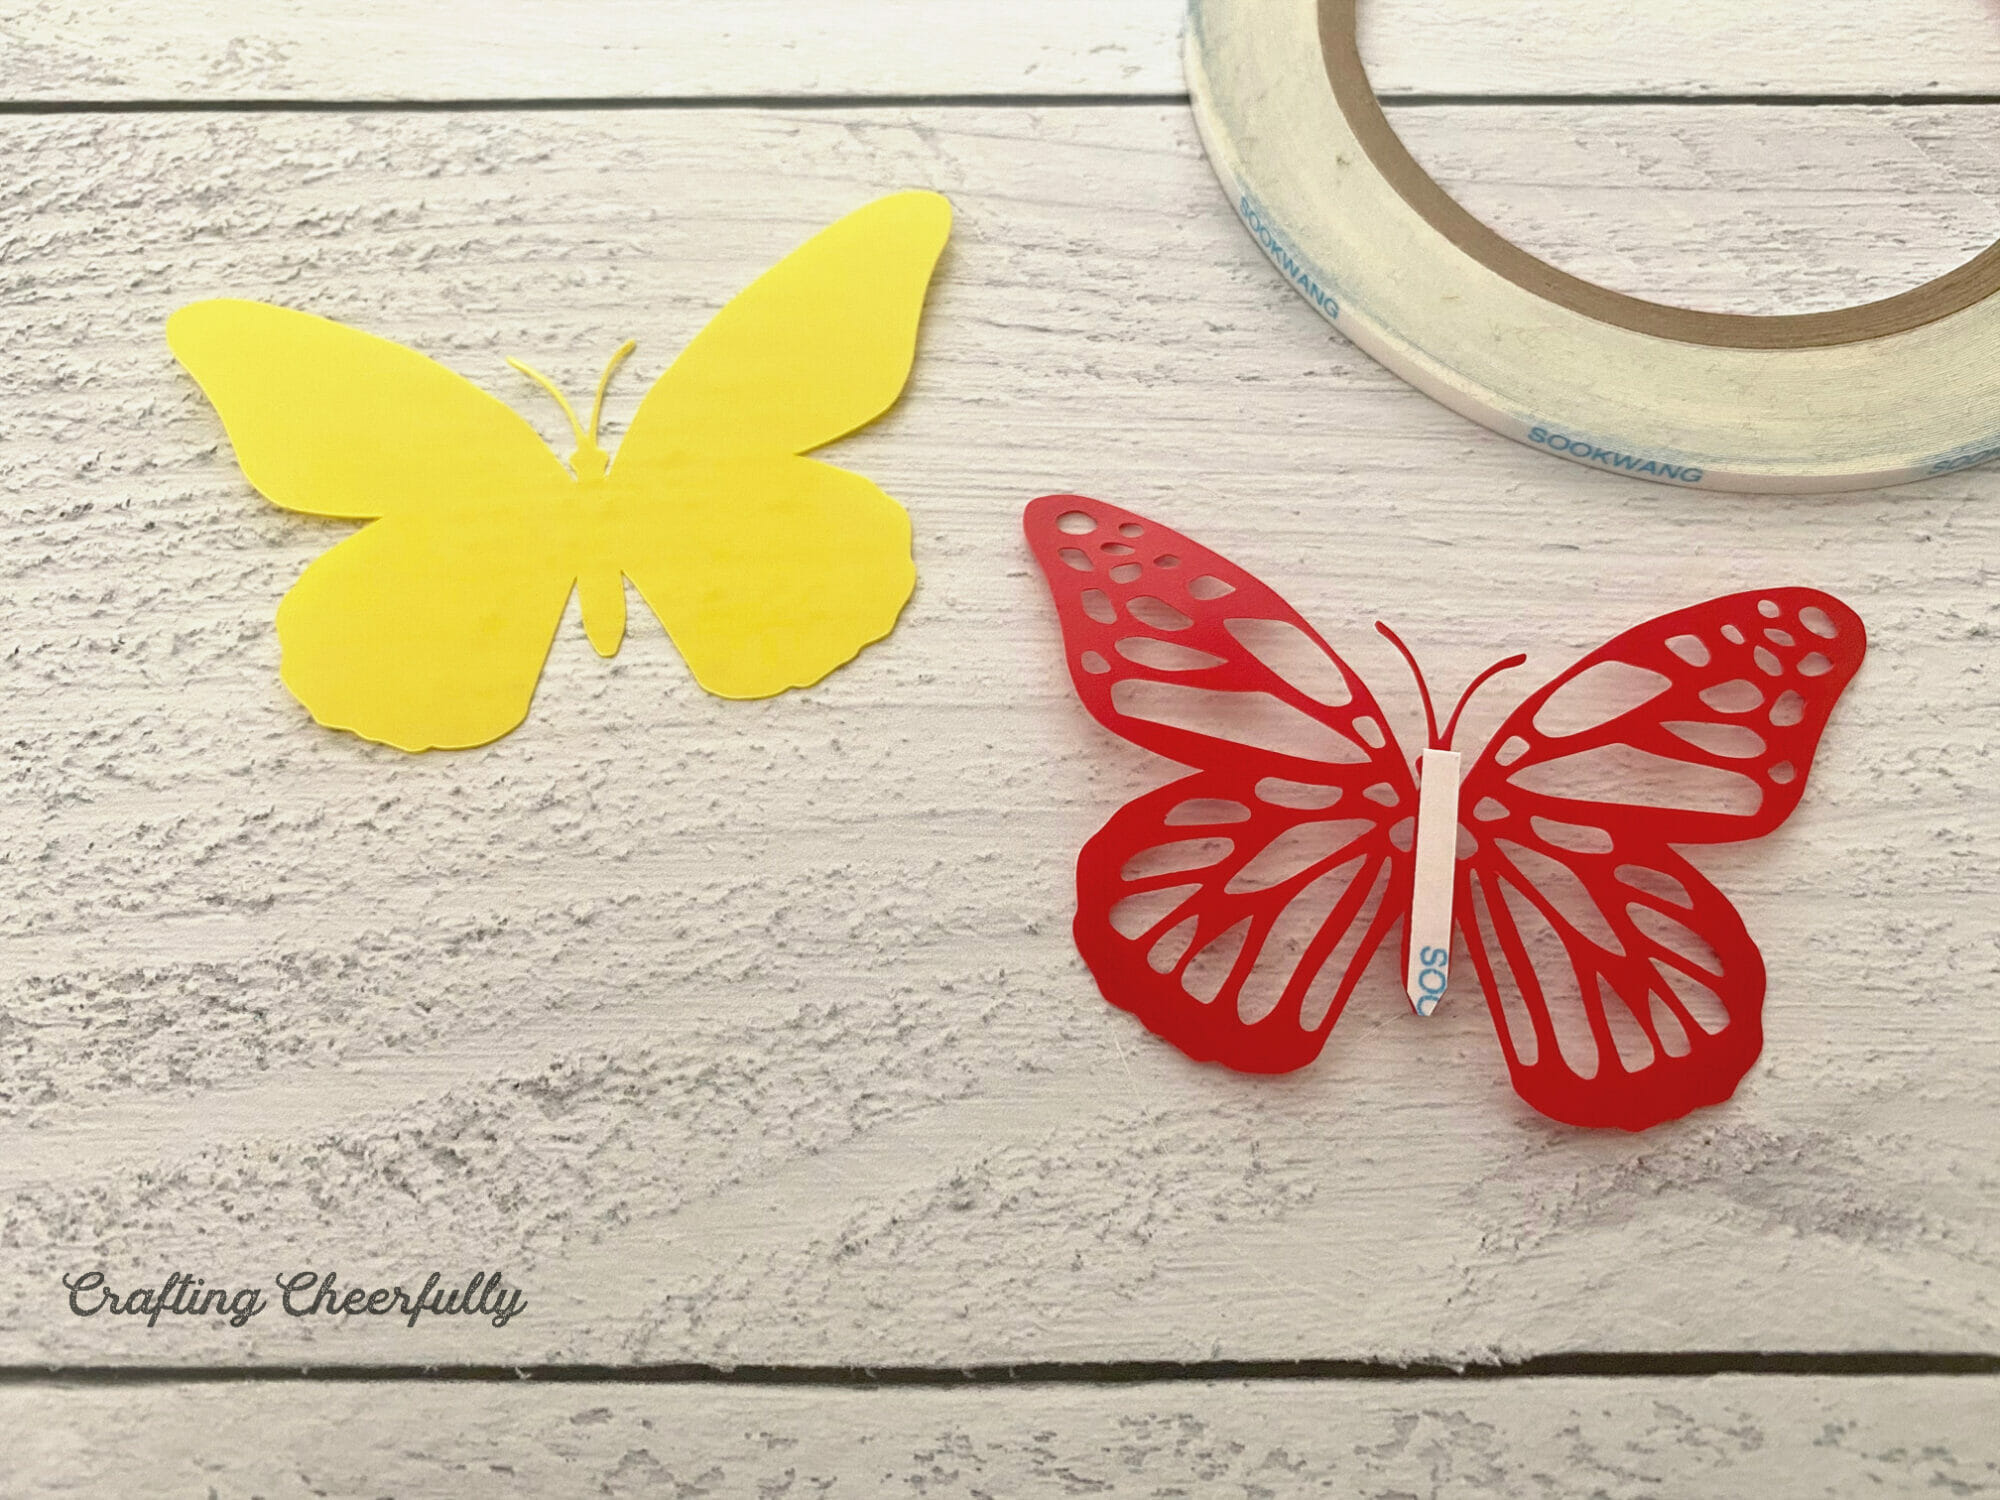 A yellow butterfly and a red butterfly with a cut out design lay next to each other, double-sided tape is on the back of the red one.